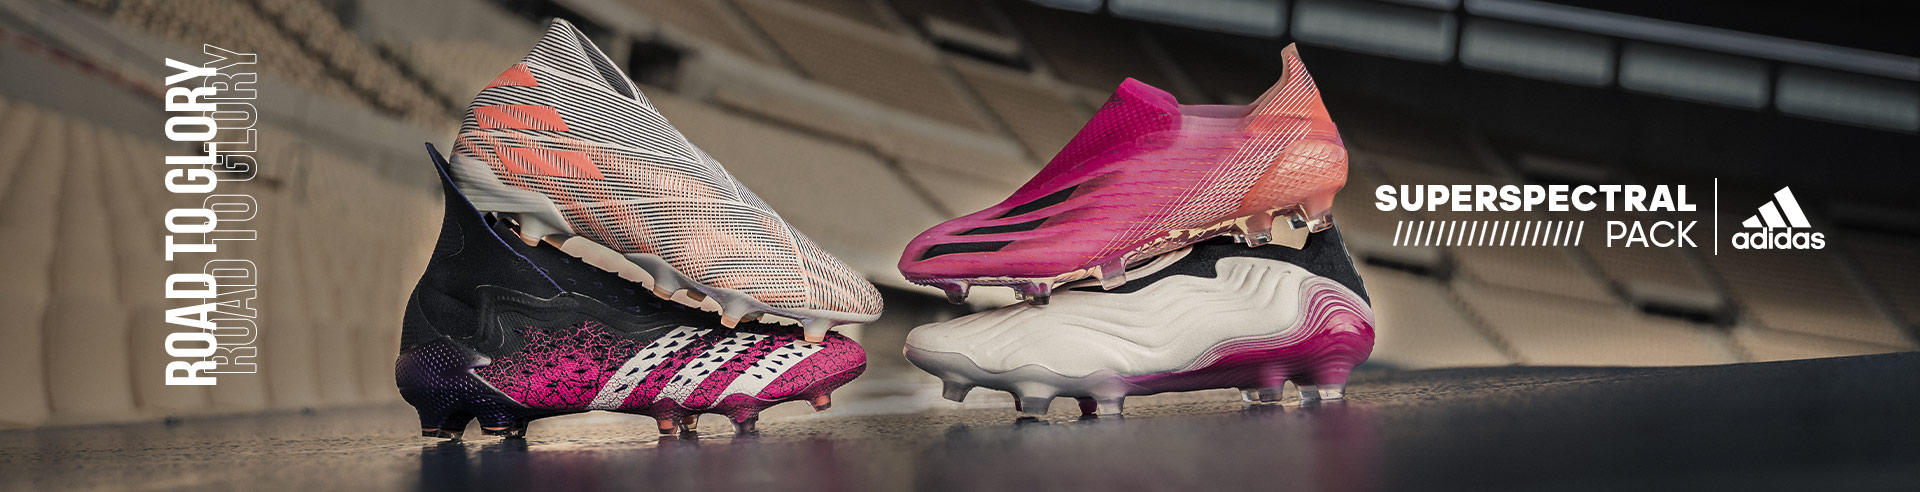 ADIDAS SUPERSPECTRAL PACK ABRIL 2021